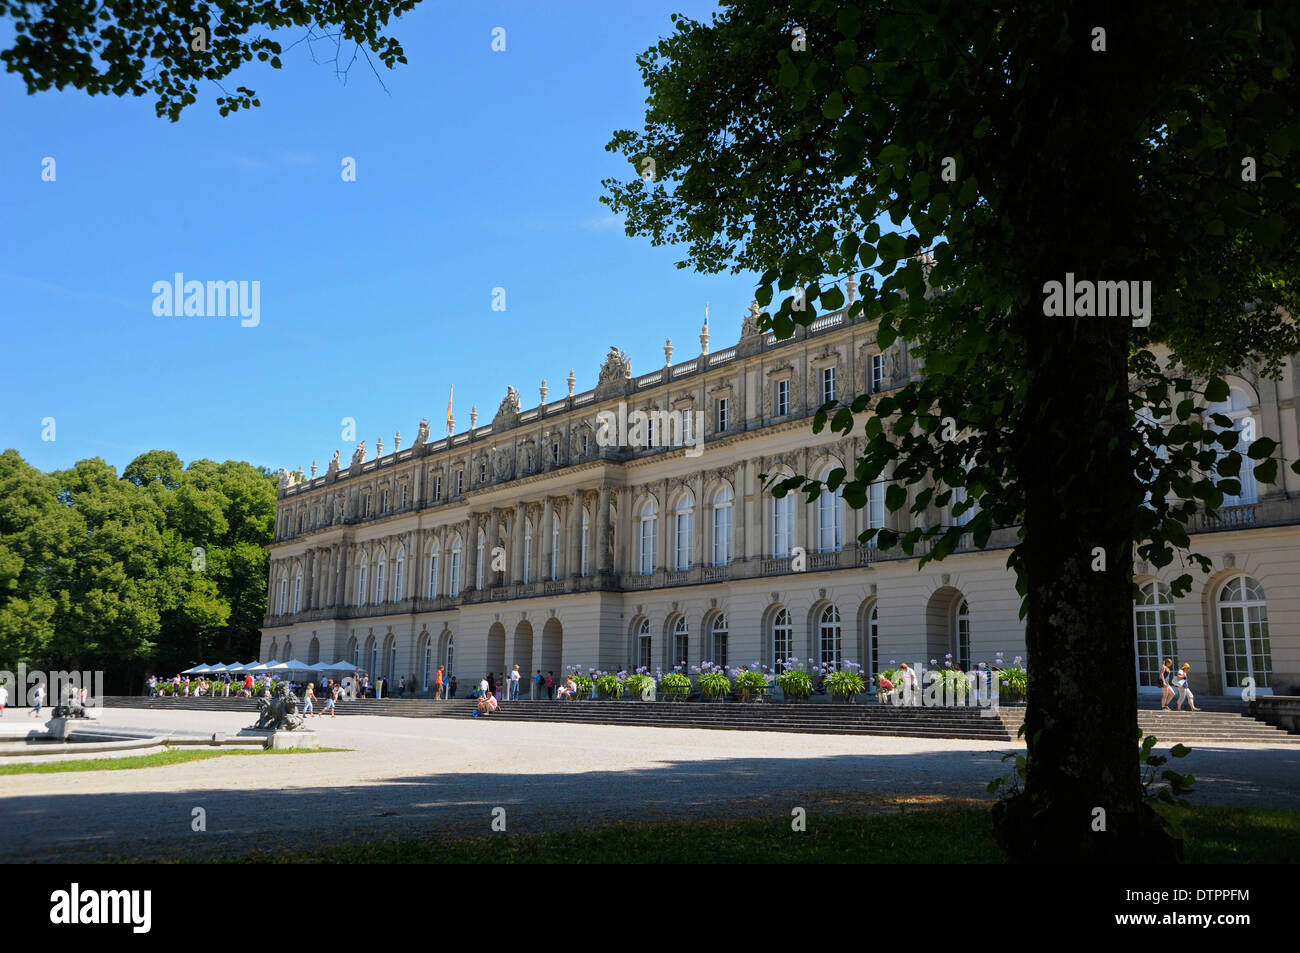 Castle of Herrenchiemsee, Chiemsee, Bavaria, Germany - Stock Image